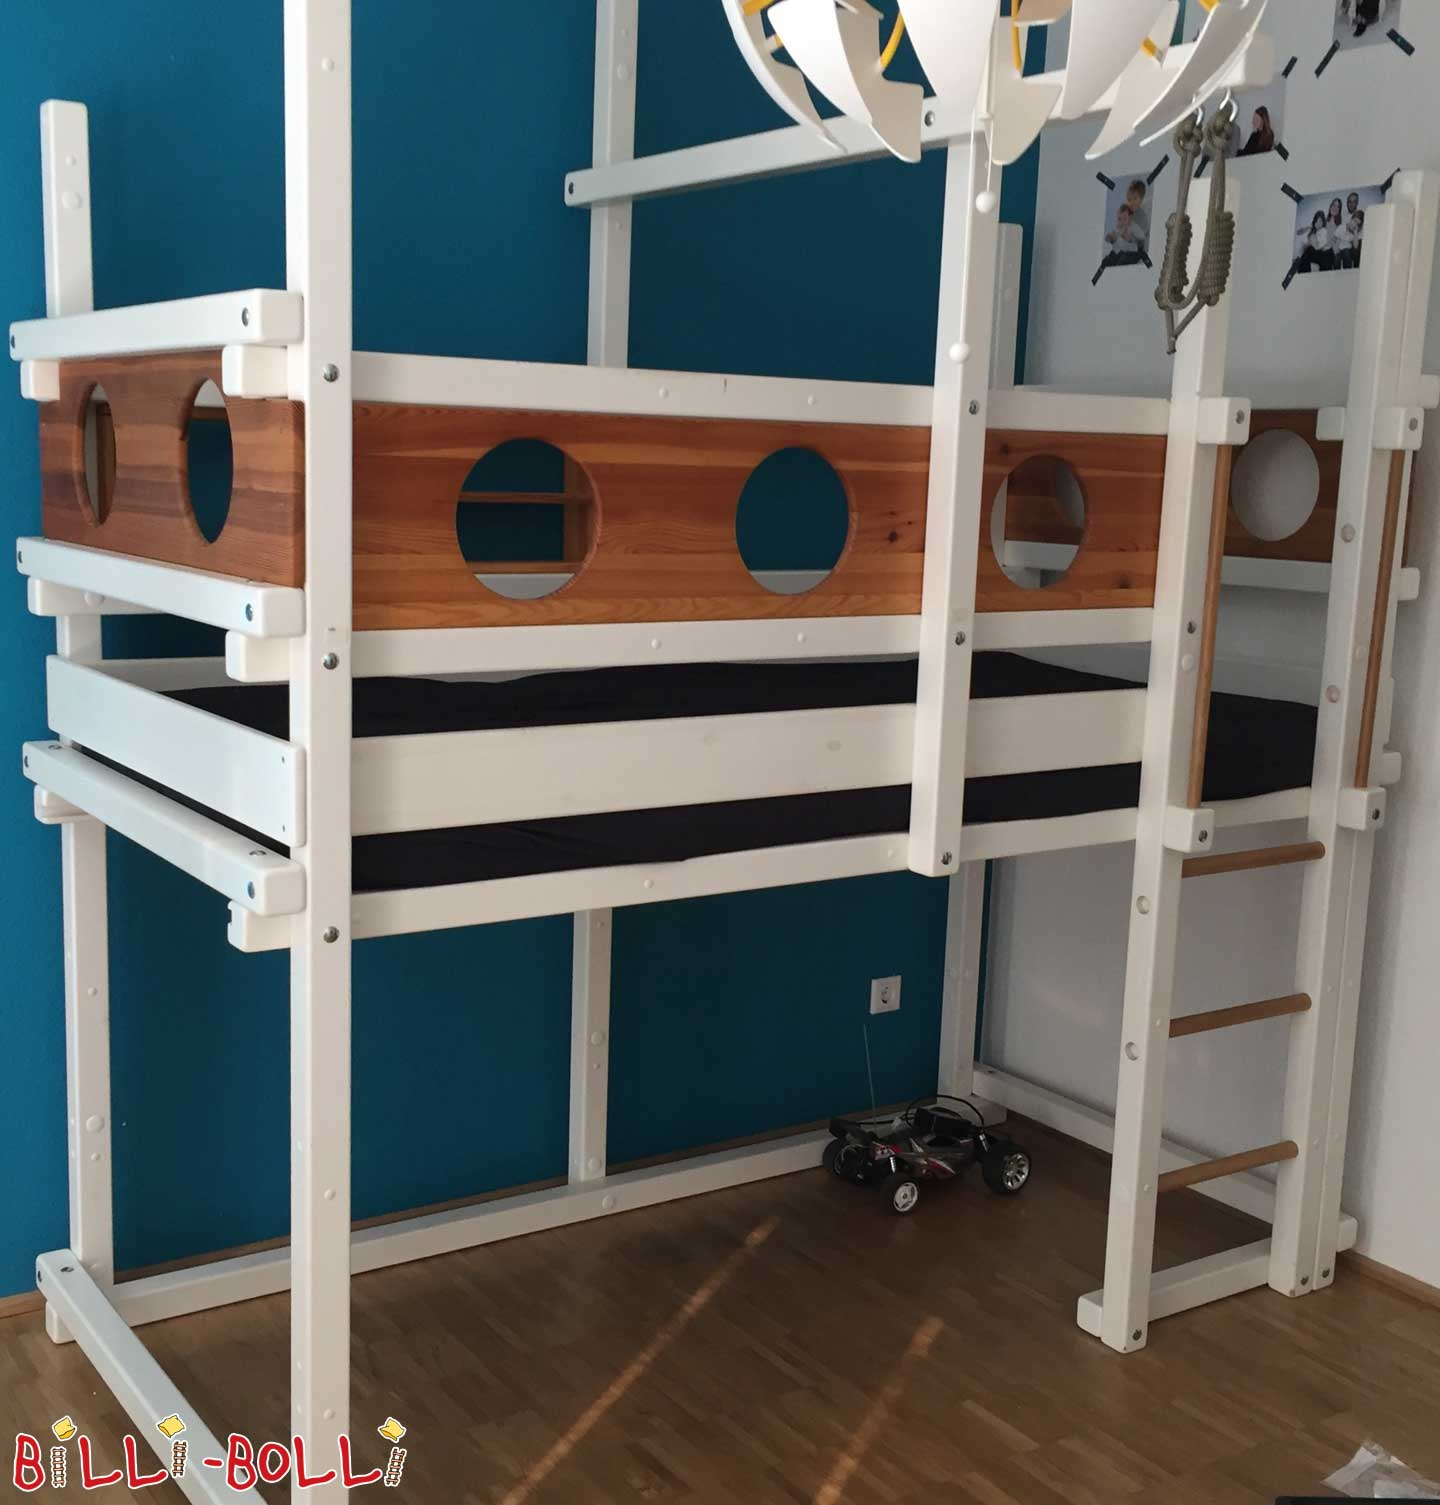 Growing bunk bed 90 x 200 cm pine, white lacquered (second hand loft bed)